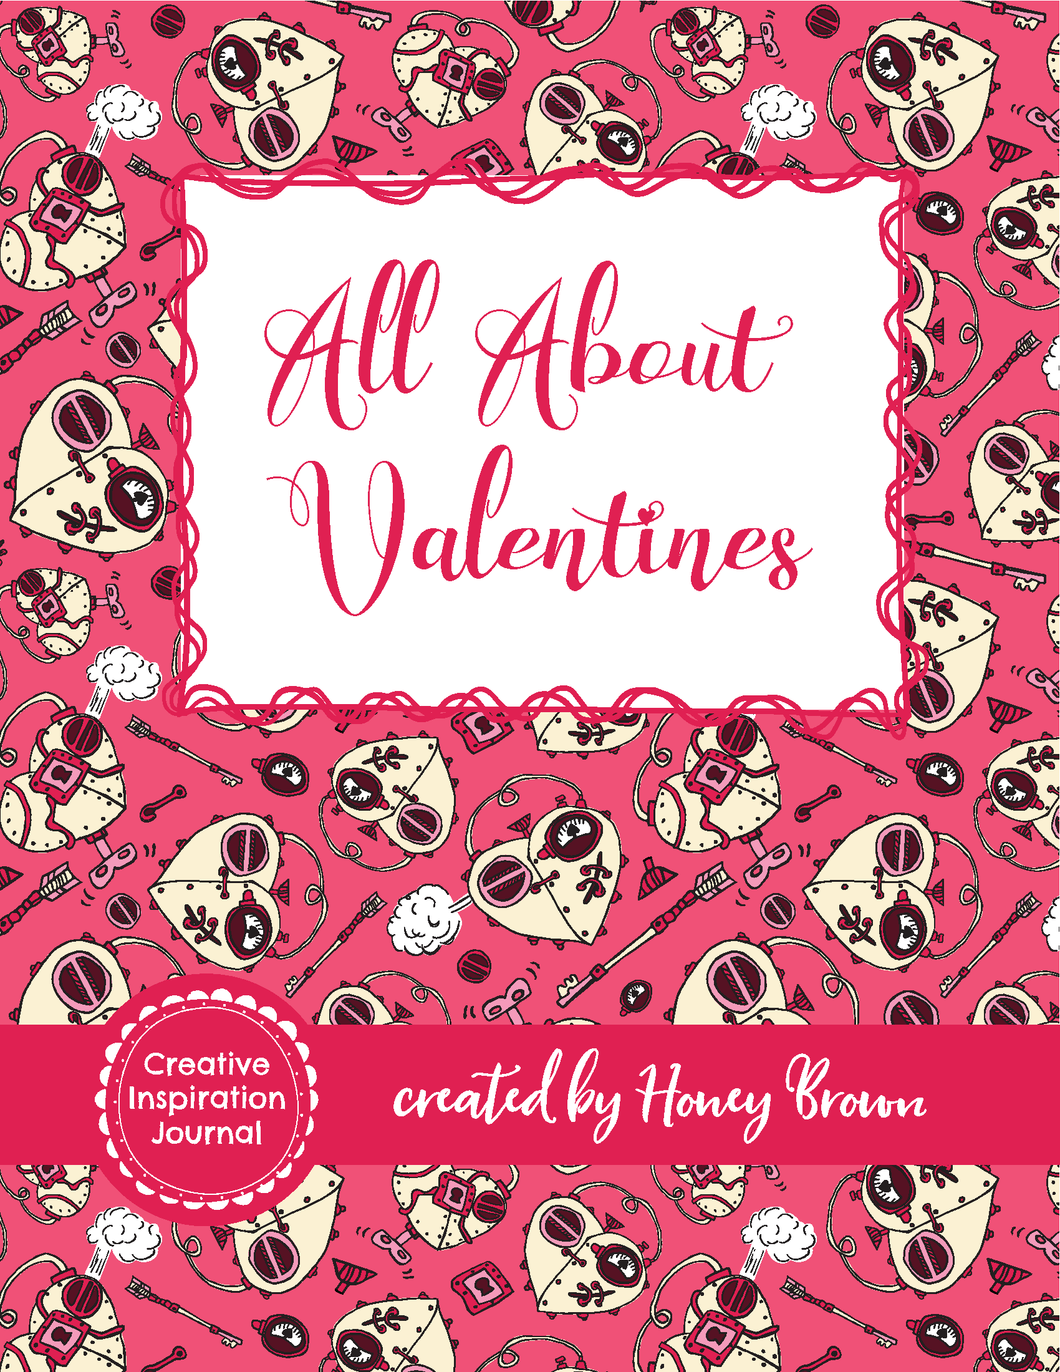 All About Valentines - Creative Inspiration Journal